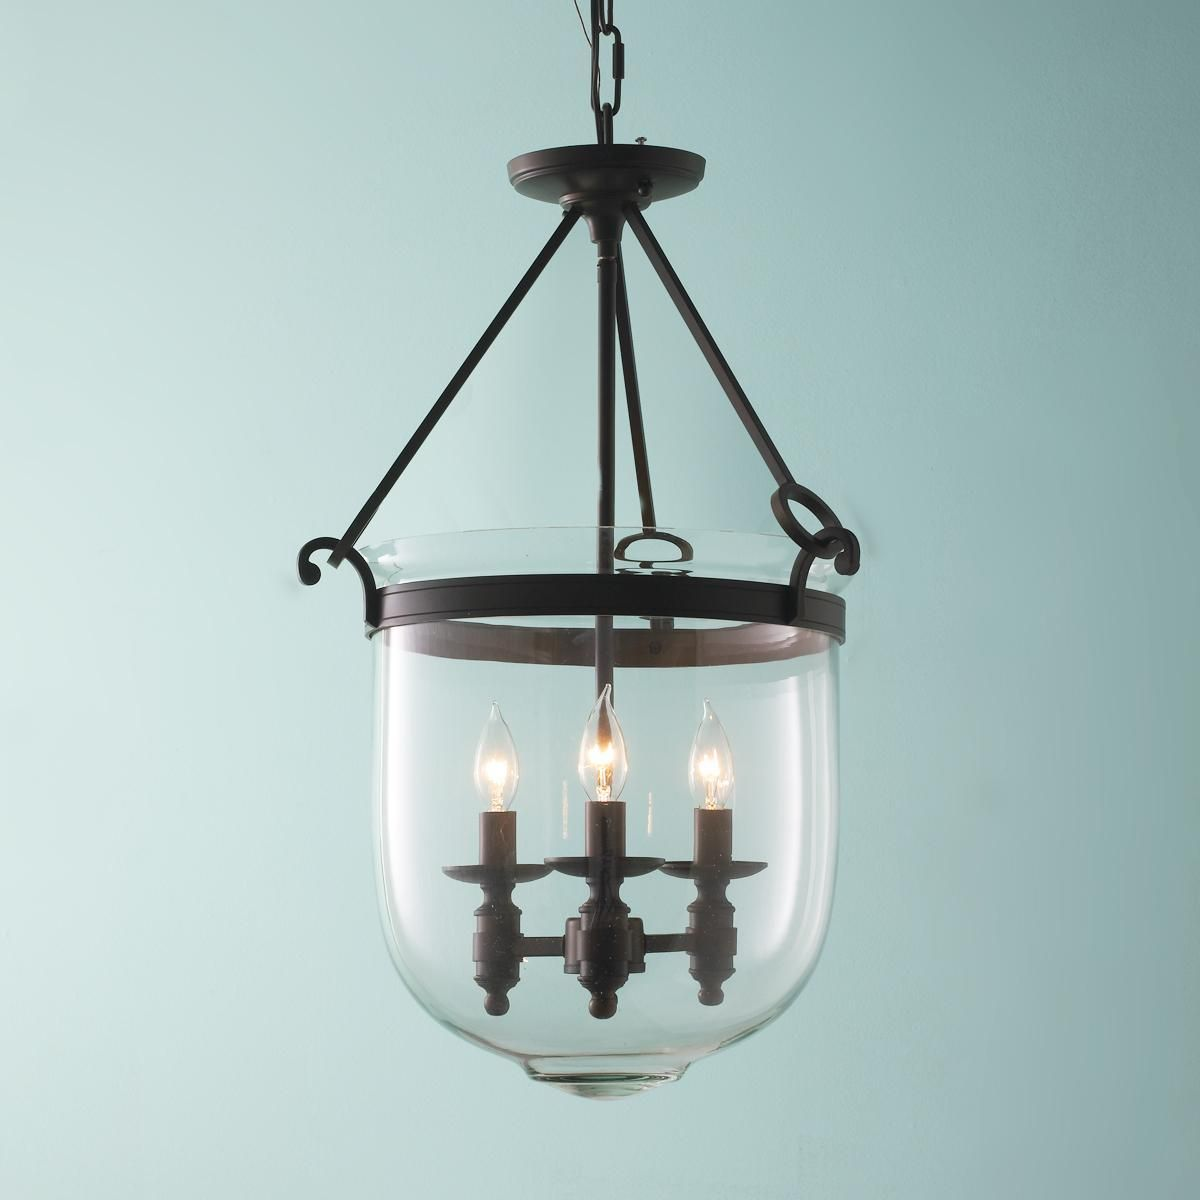 Classic Smokebell Lantern | Lights, Oil rubbed bronze and Ceiling fan